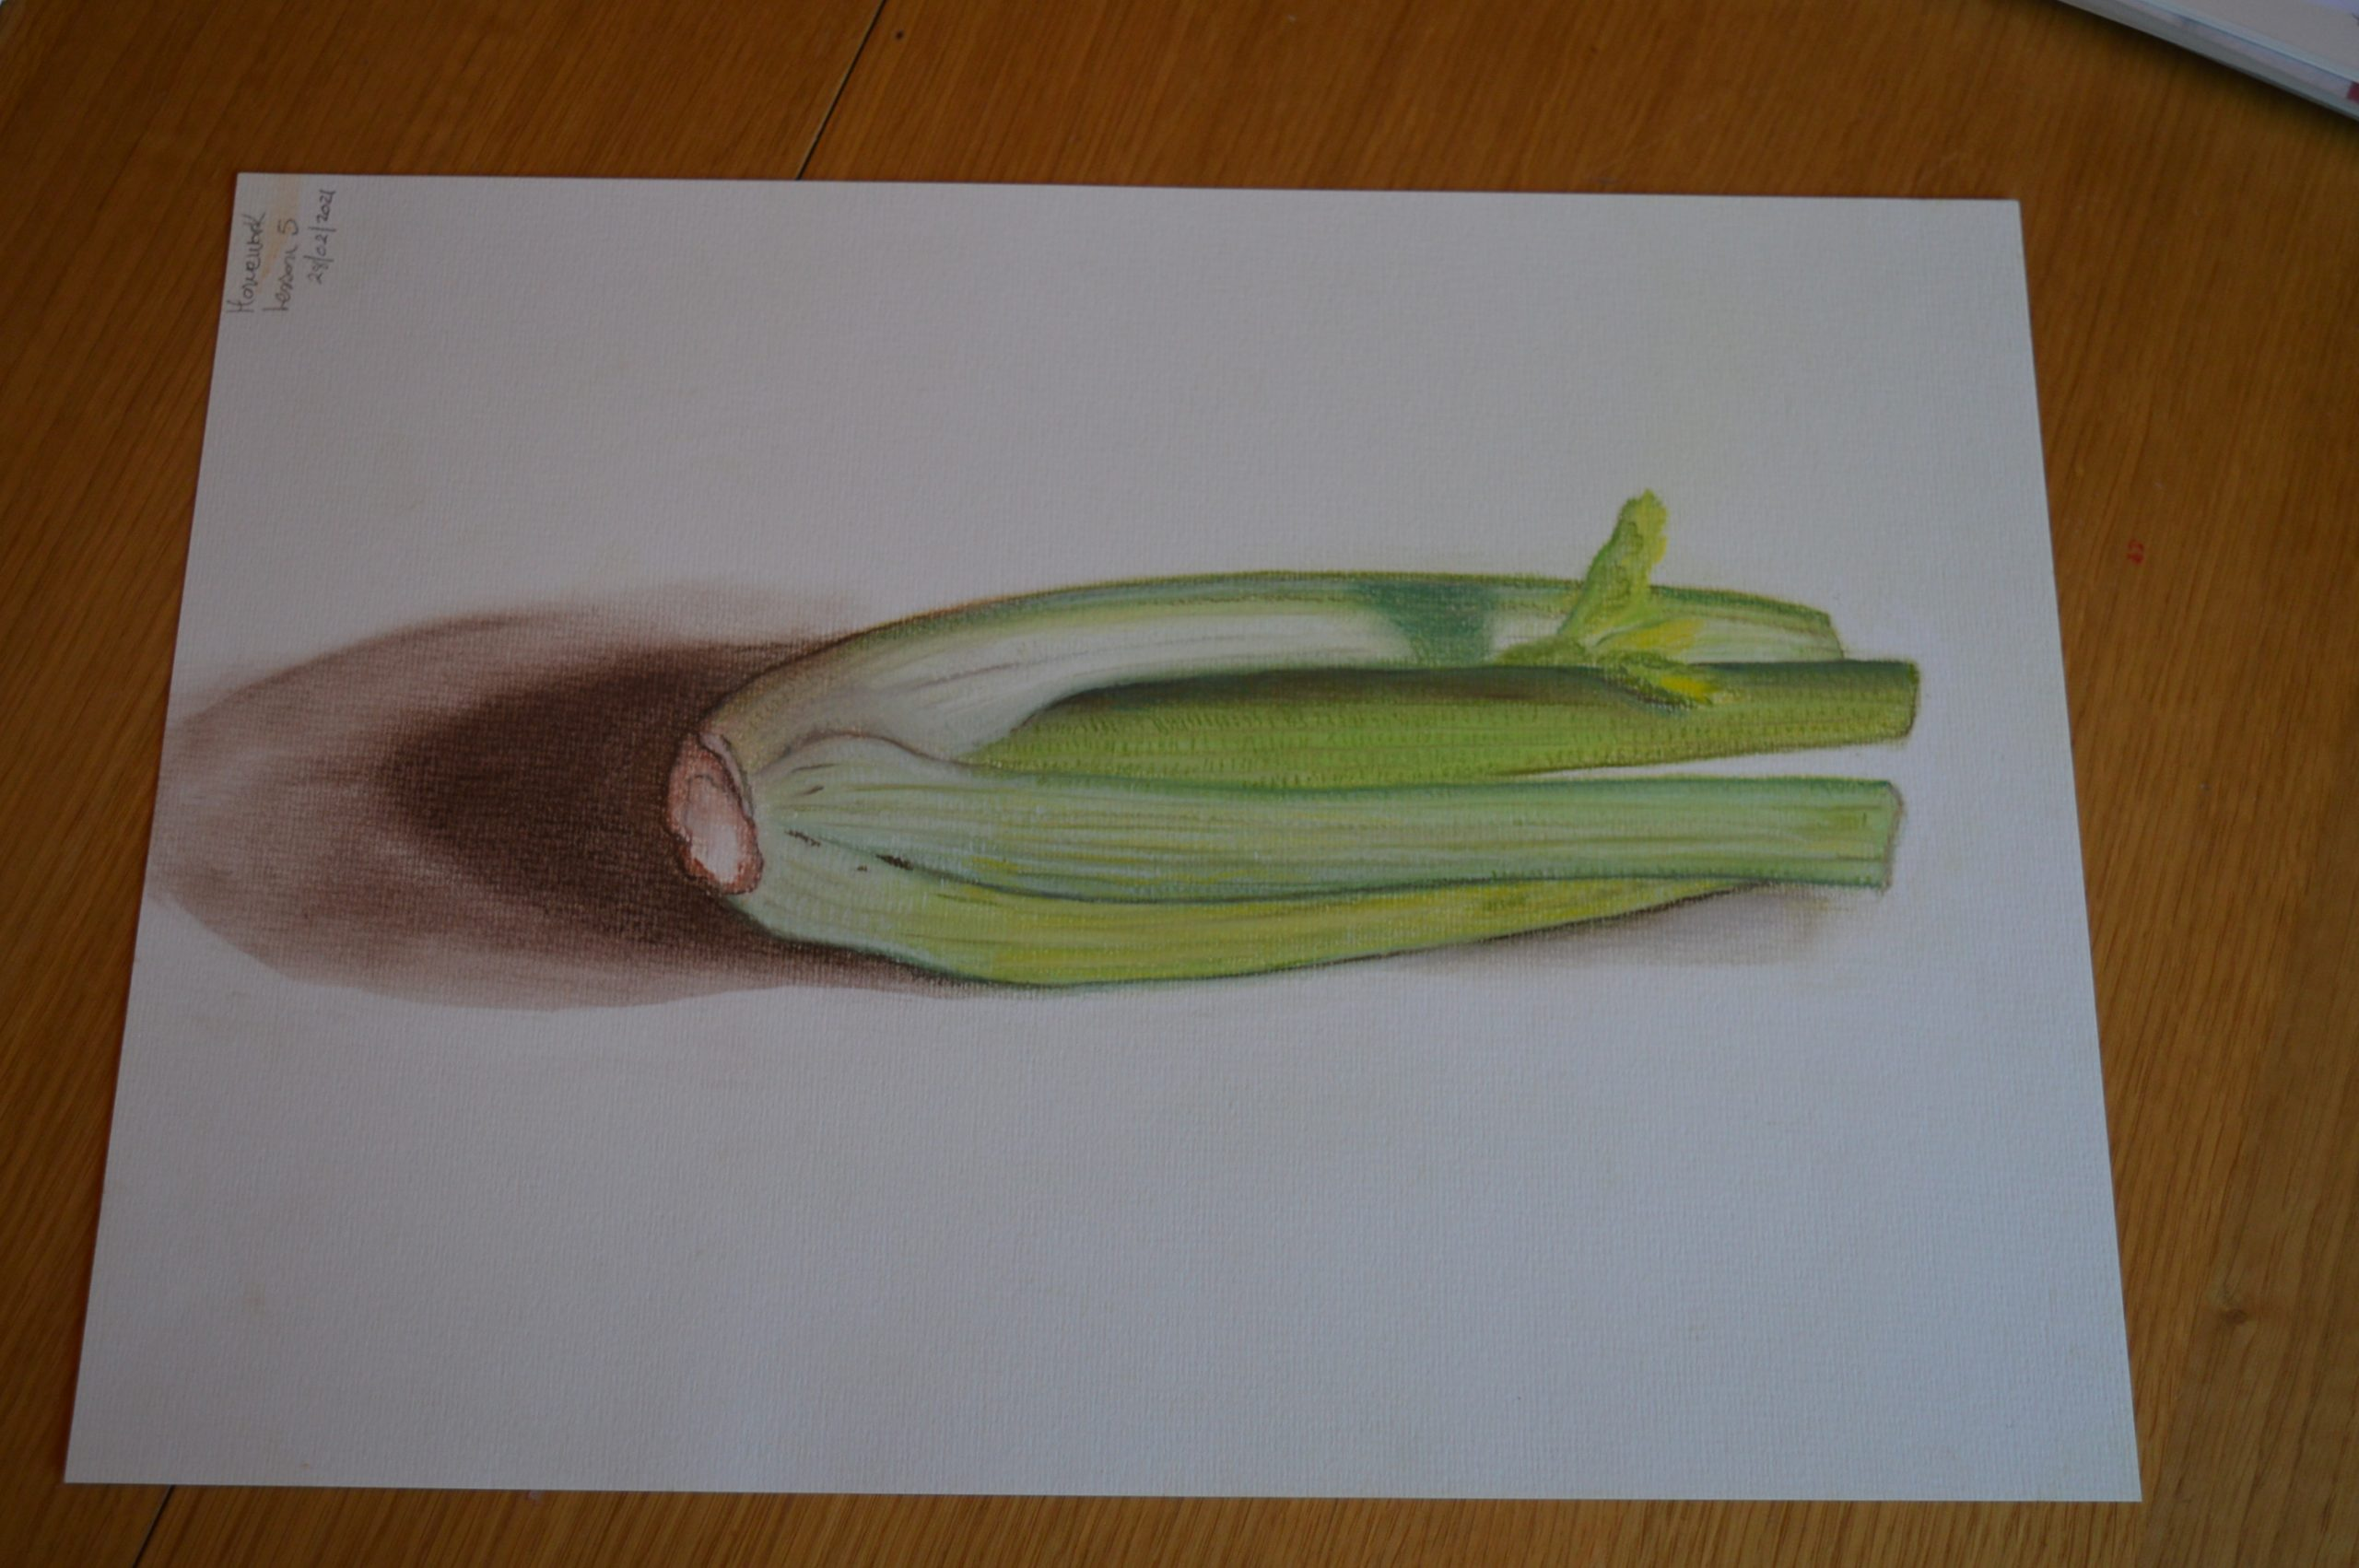 Learn to use chalk pastels at the best online art course for complete beginners with Raya Brown